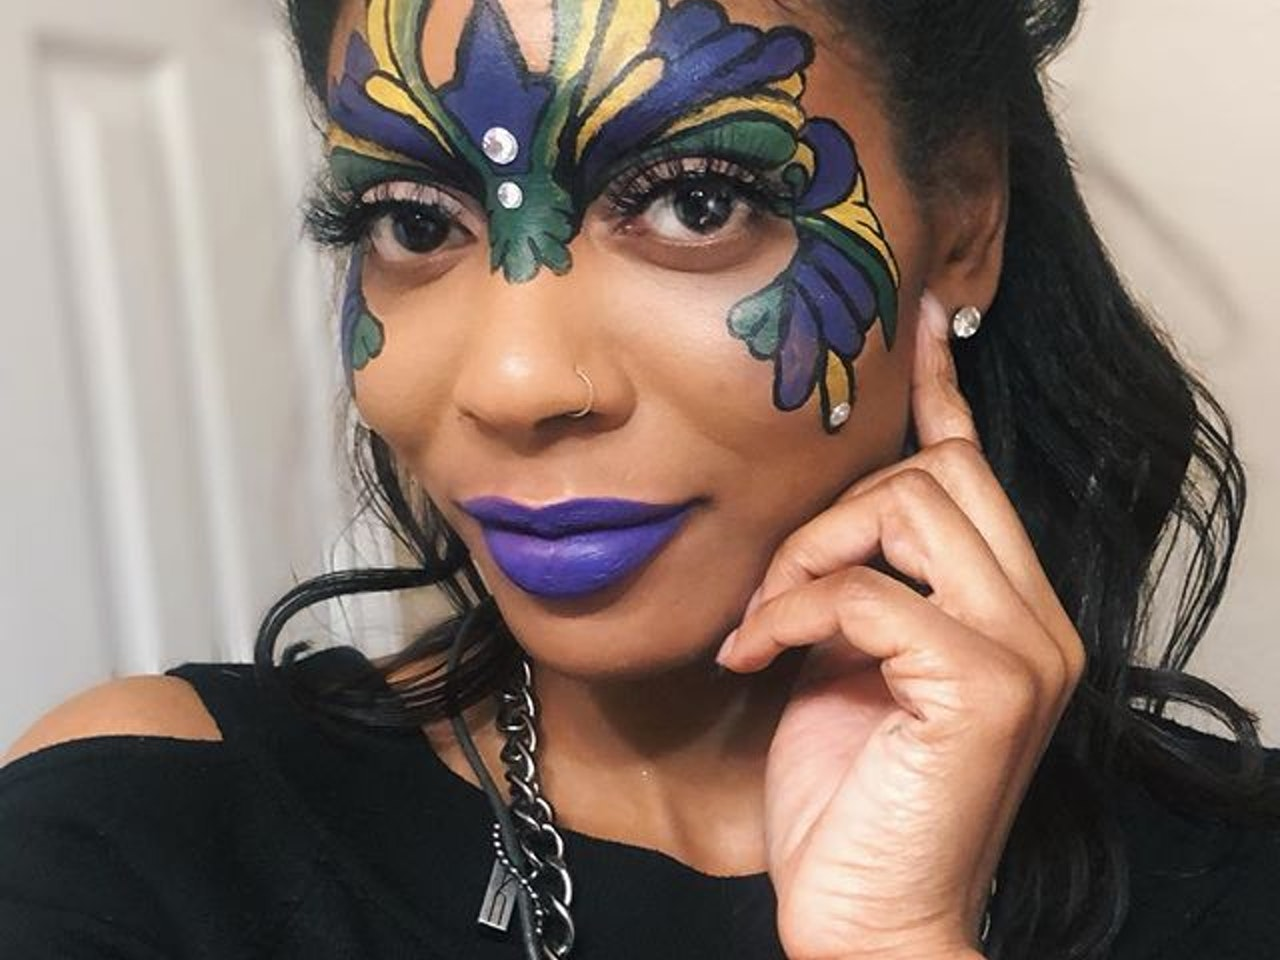 Makeup artistry is an escape to a creative peaceful land. Come join me! This was inspired by my clients request to have a Mardi Gras Mask. @Beluxxia Beauty Lashes: Vicki Vixen #mardigras #mardigras2019 #mardigrasmask #maskmakeup #facesbyfiona #afterworkfun #dallasmakeup #dallasmakeupartist #dfwmakeup #dfwmakeupartist